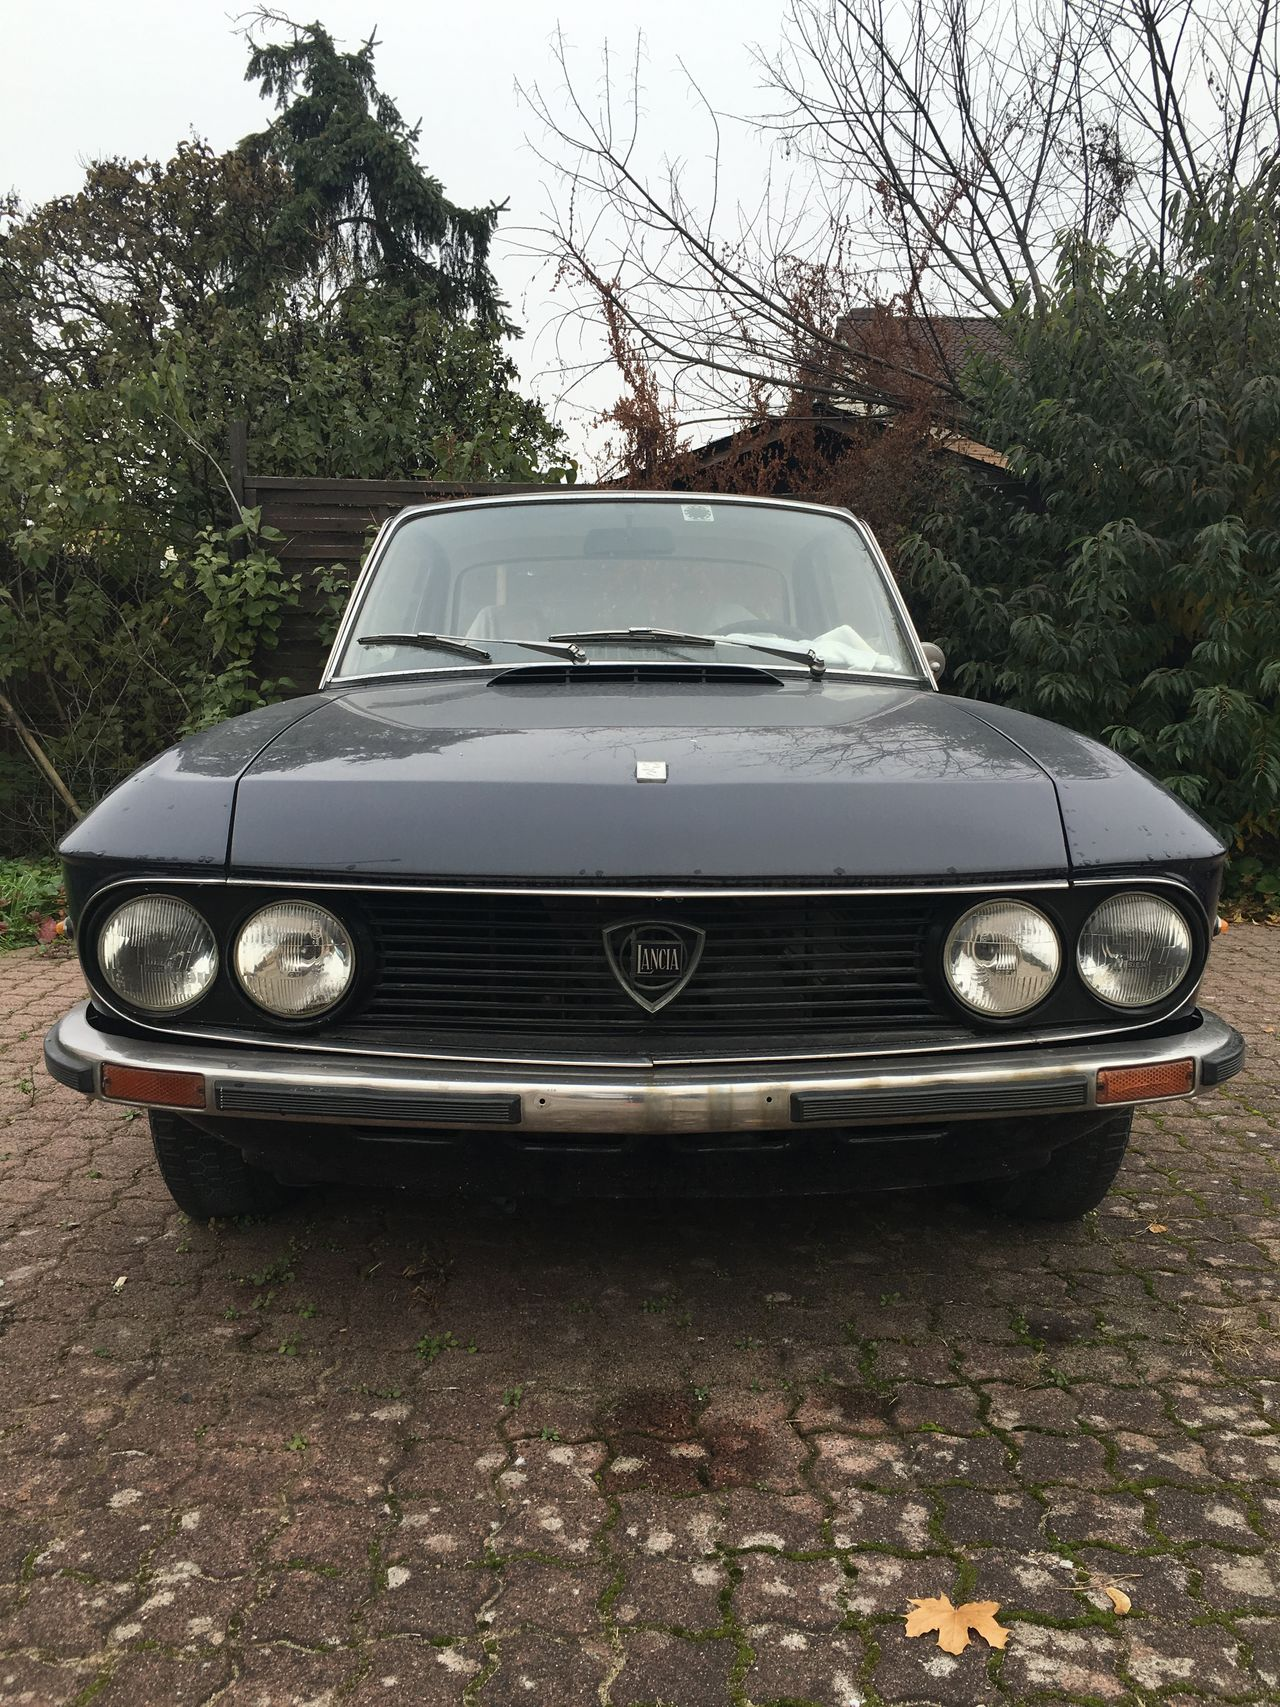 …spotted this (maybe early 70s) Lancia Fulvia 3 here in Alzenau!